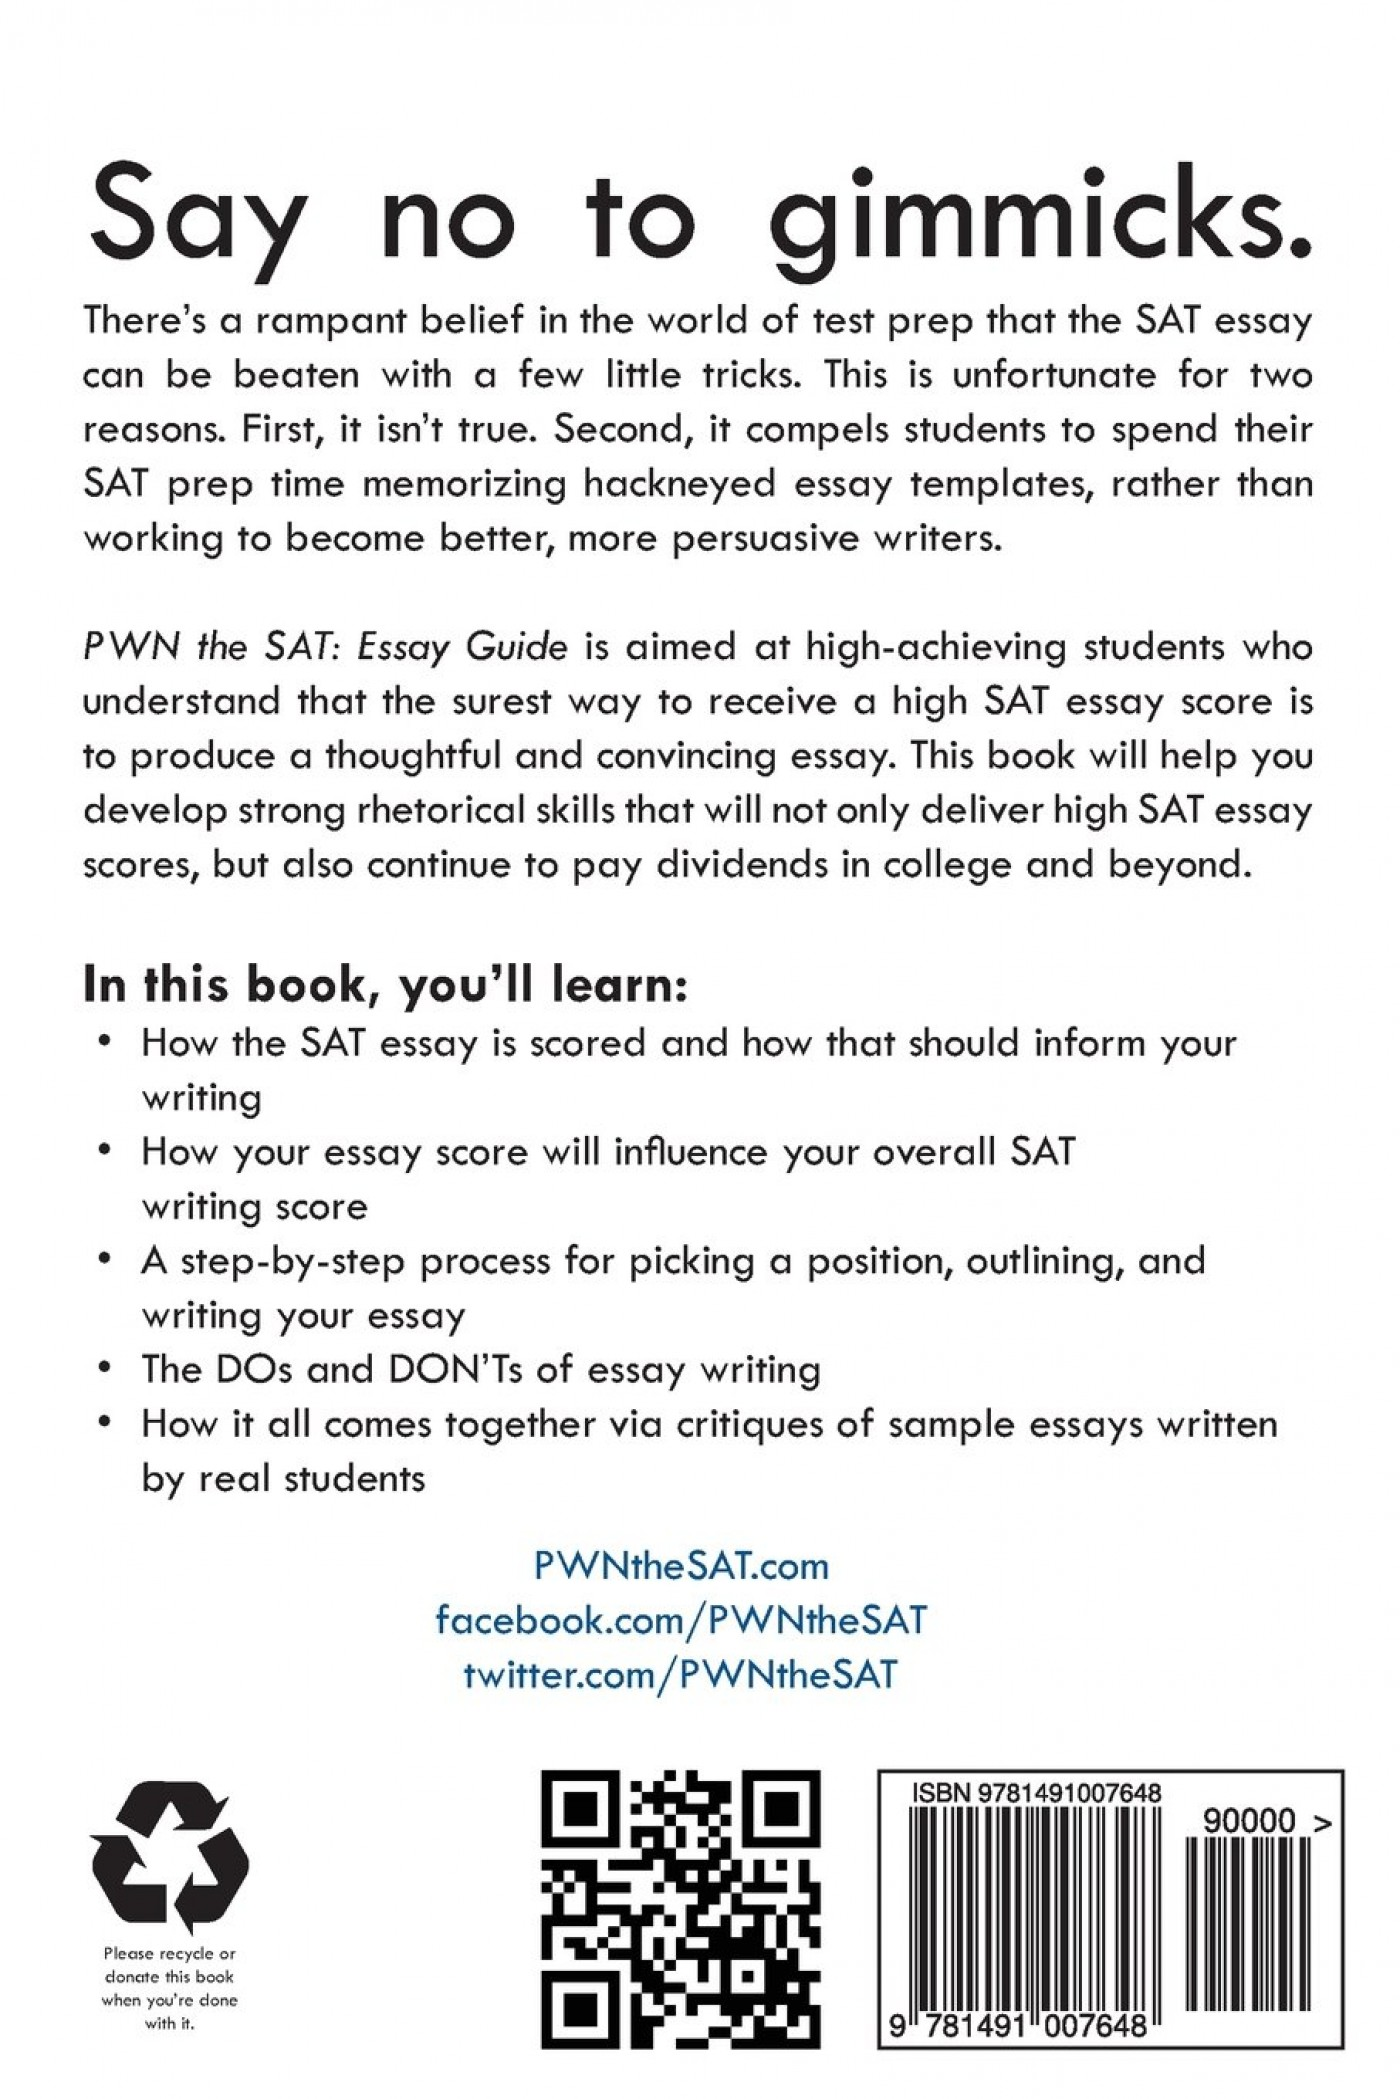 009 Sat Essay 712bcqjf85sl Rare Writing Tips Pdf Topics Average Score For Ivy League 1400